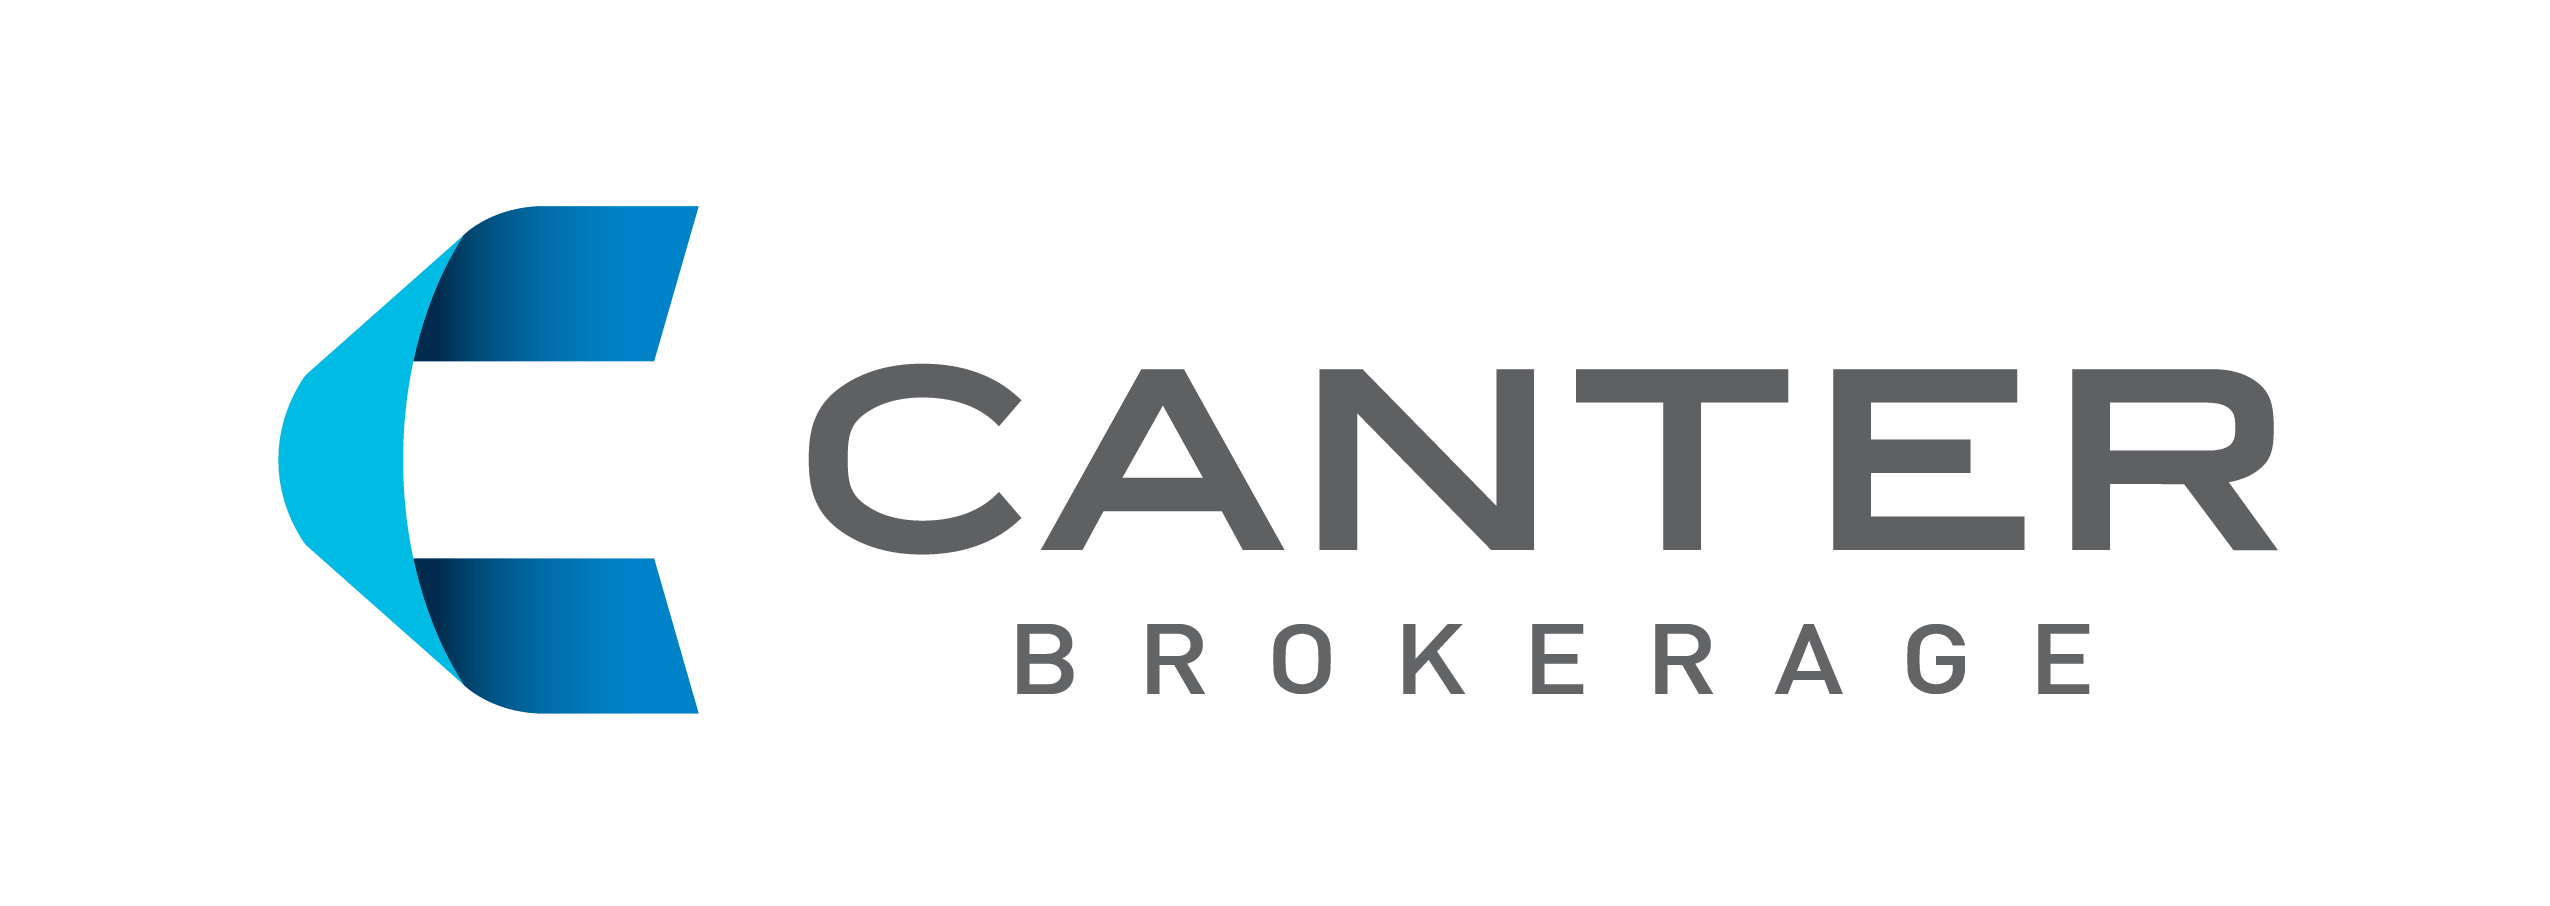 Canter Brokerage